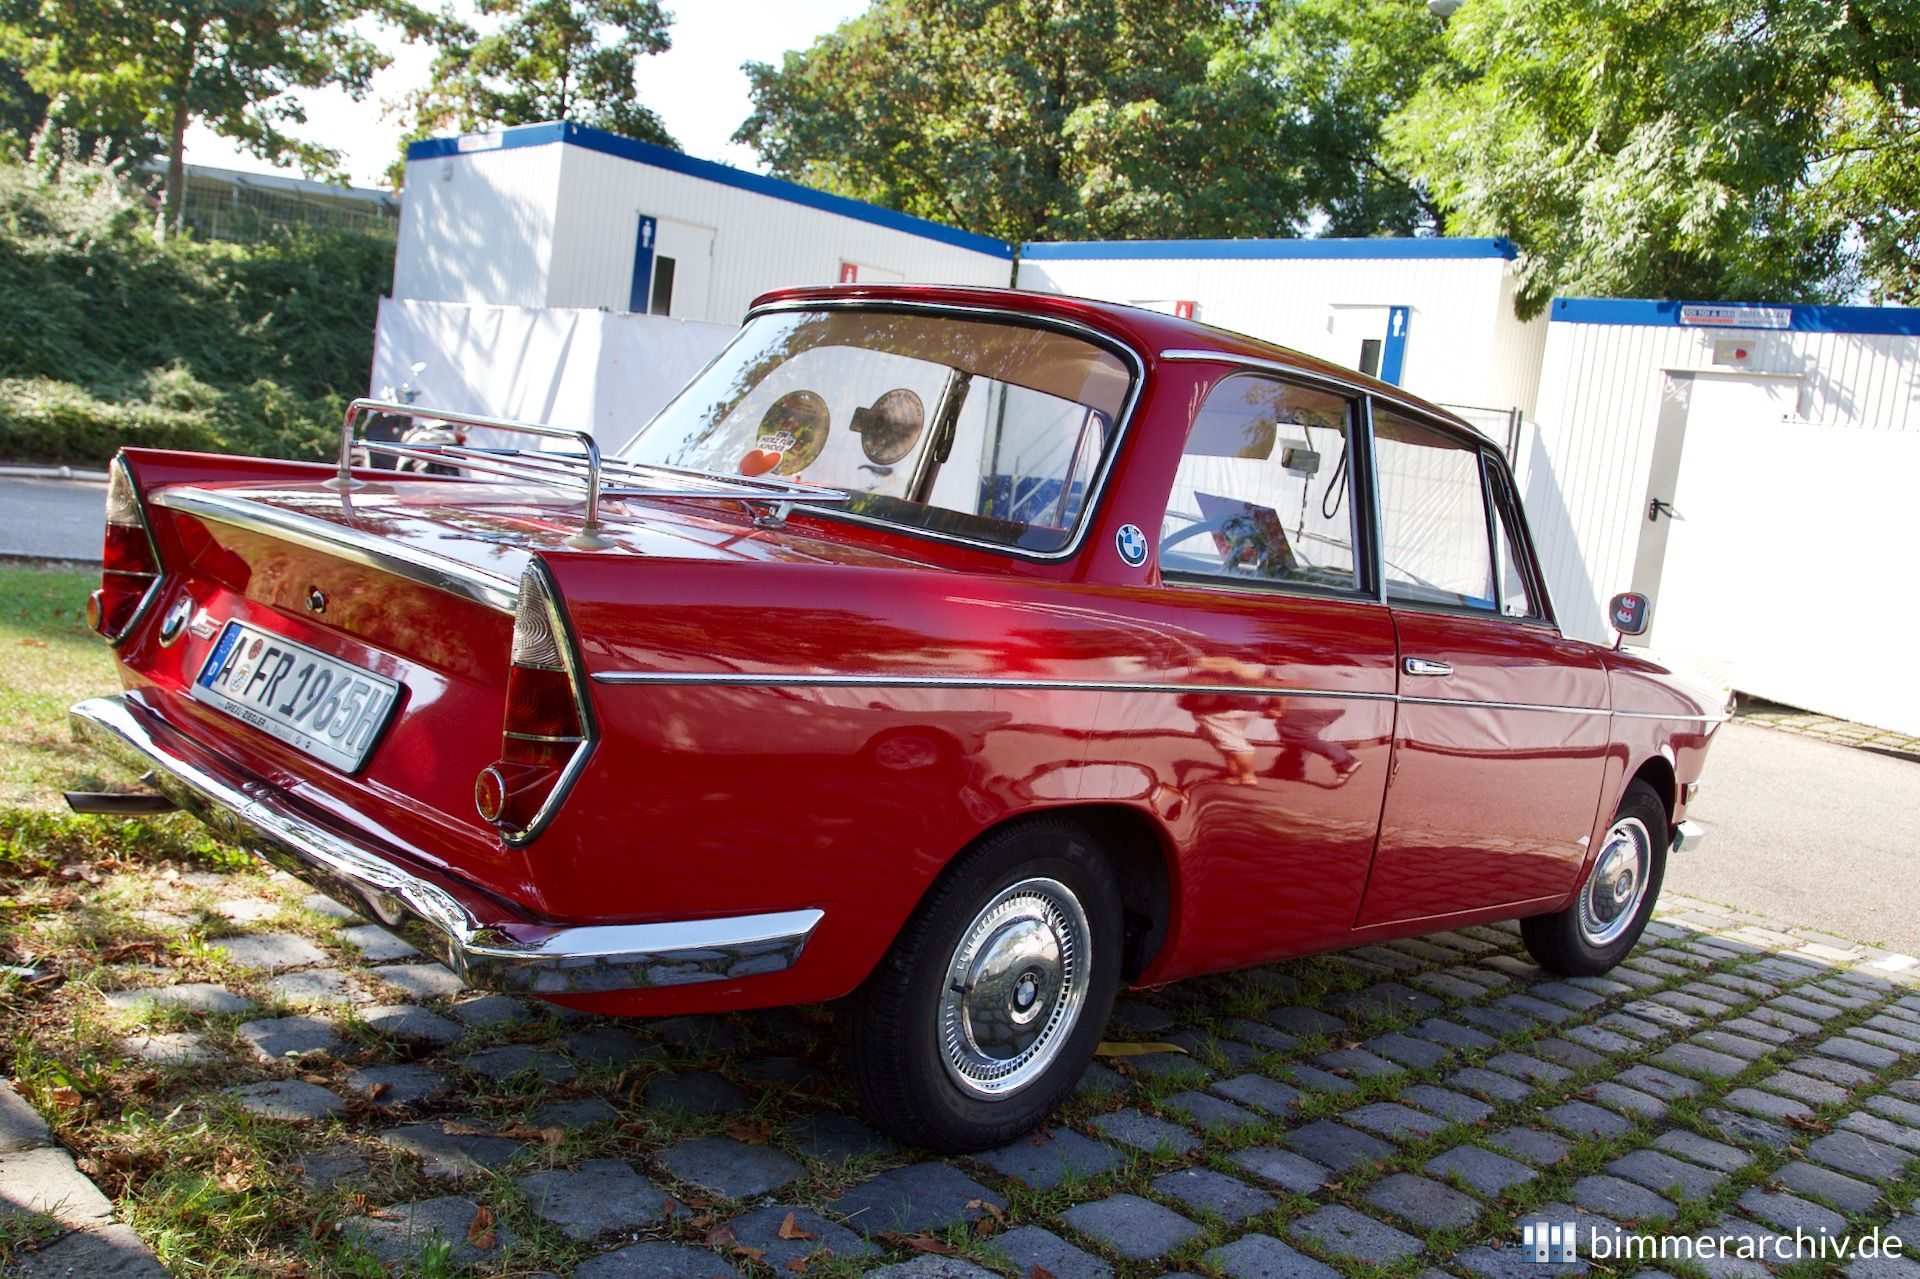 Model Archive For Bmw Models 183 Bmw 700 Ls Luxus 183 Bmwarchive Org